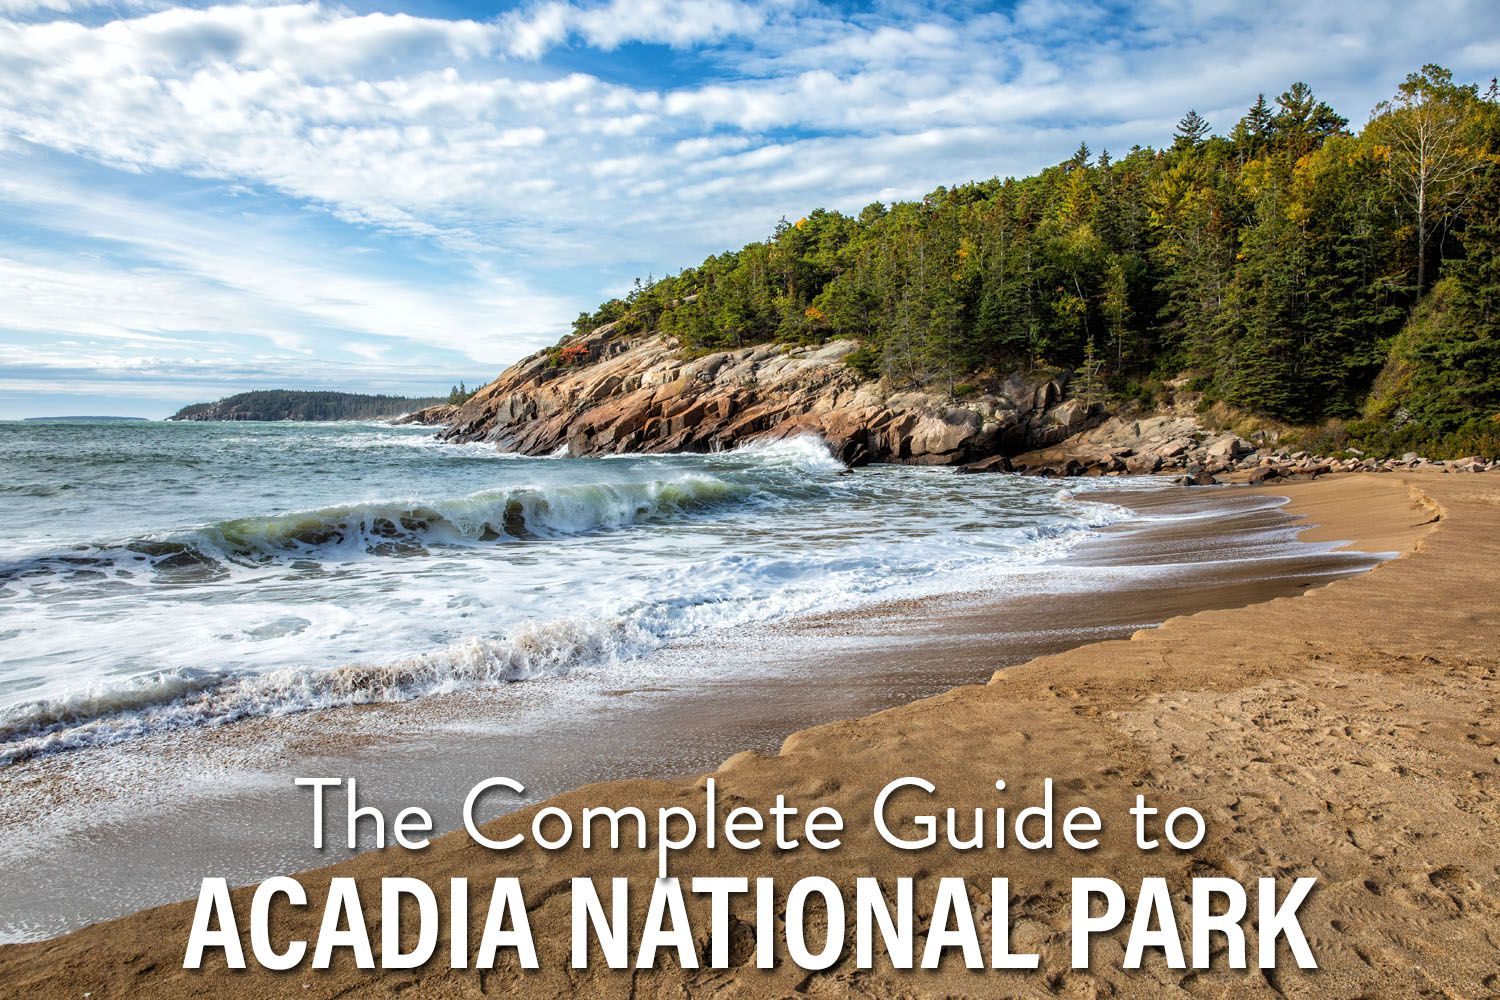 Guide to Acadia National Park